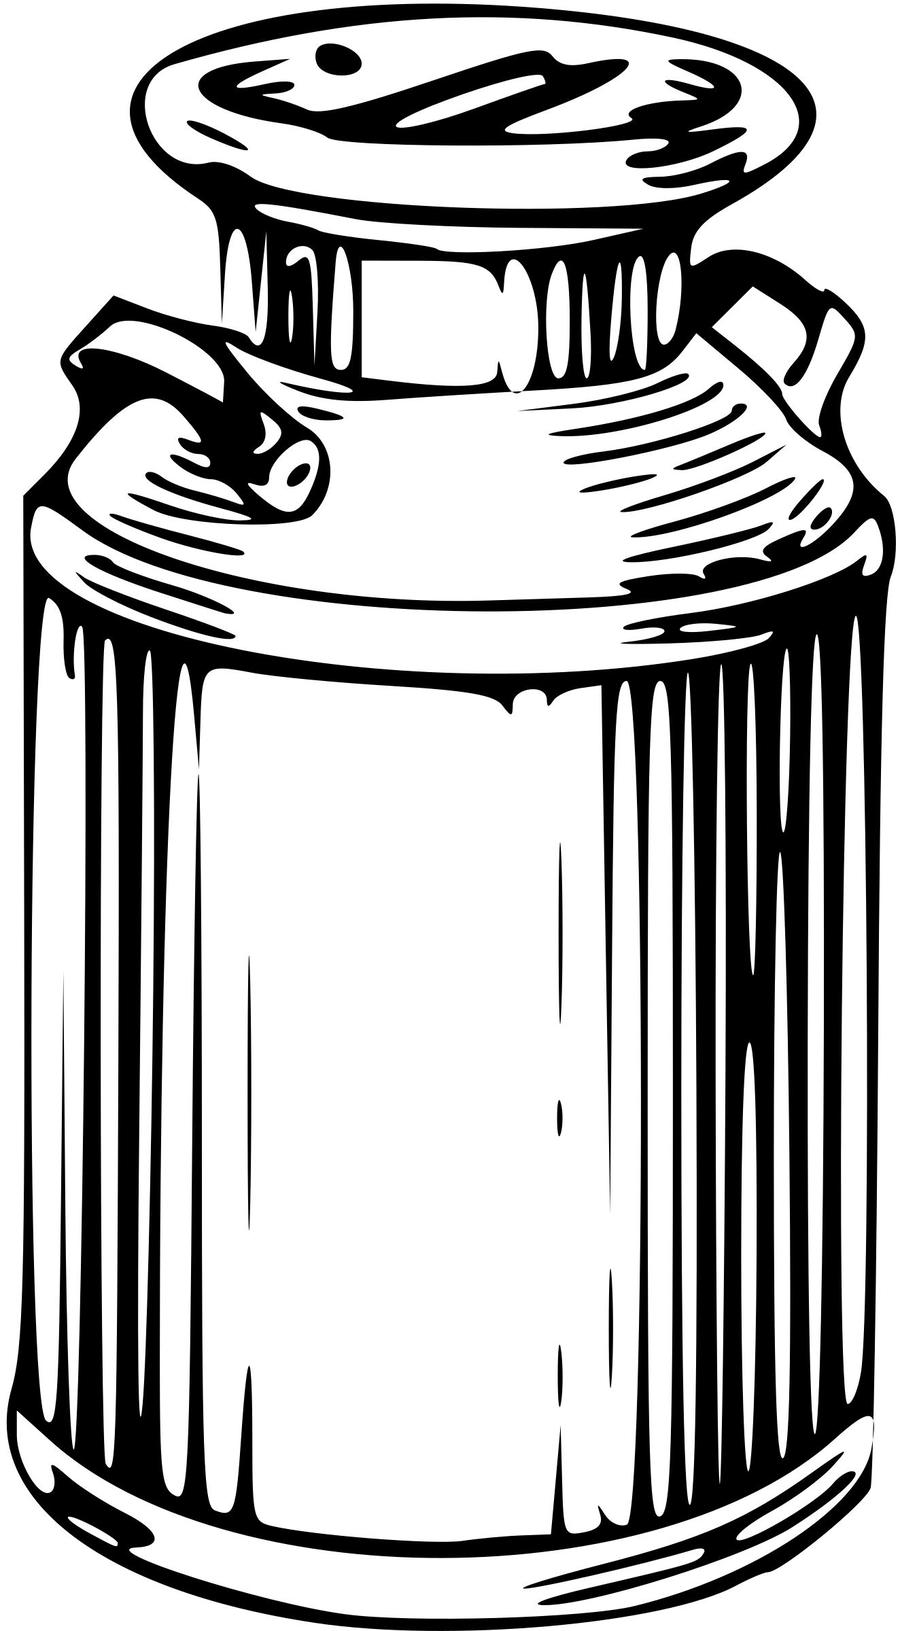 Milk can clipart graphic black and white stock Download milk can line art clipart Milk churn Clip art ... graphic black and white stock